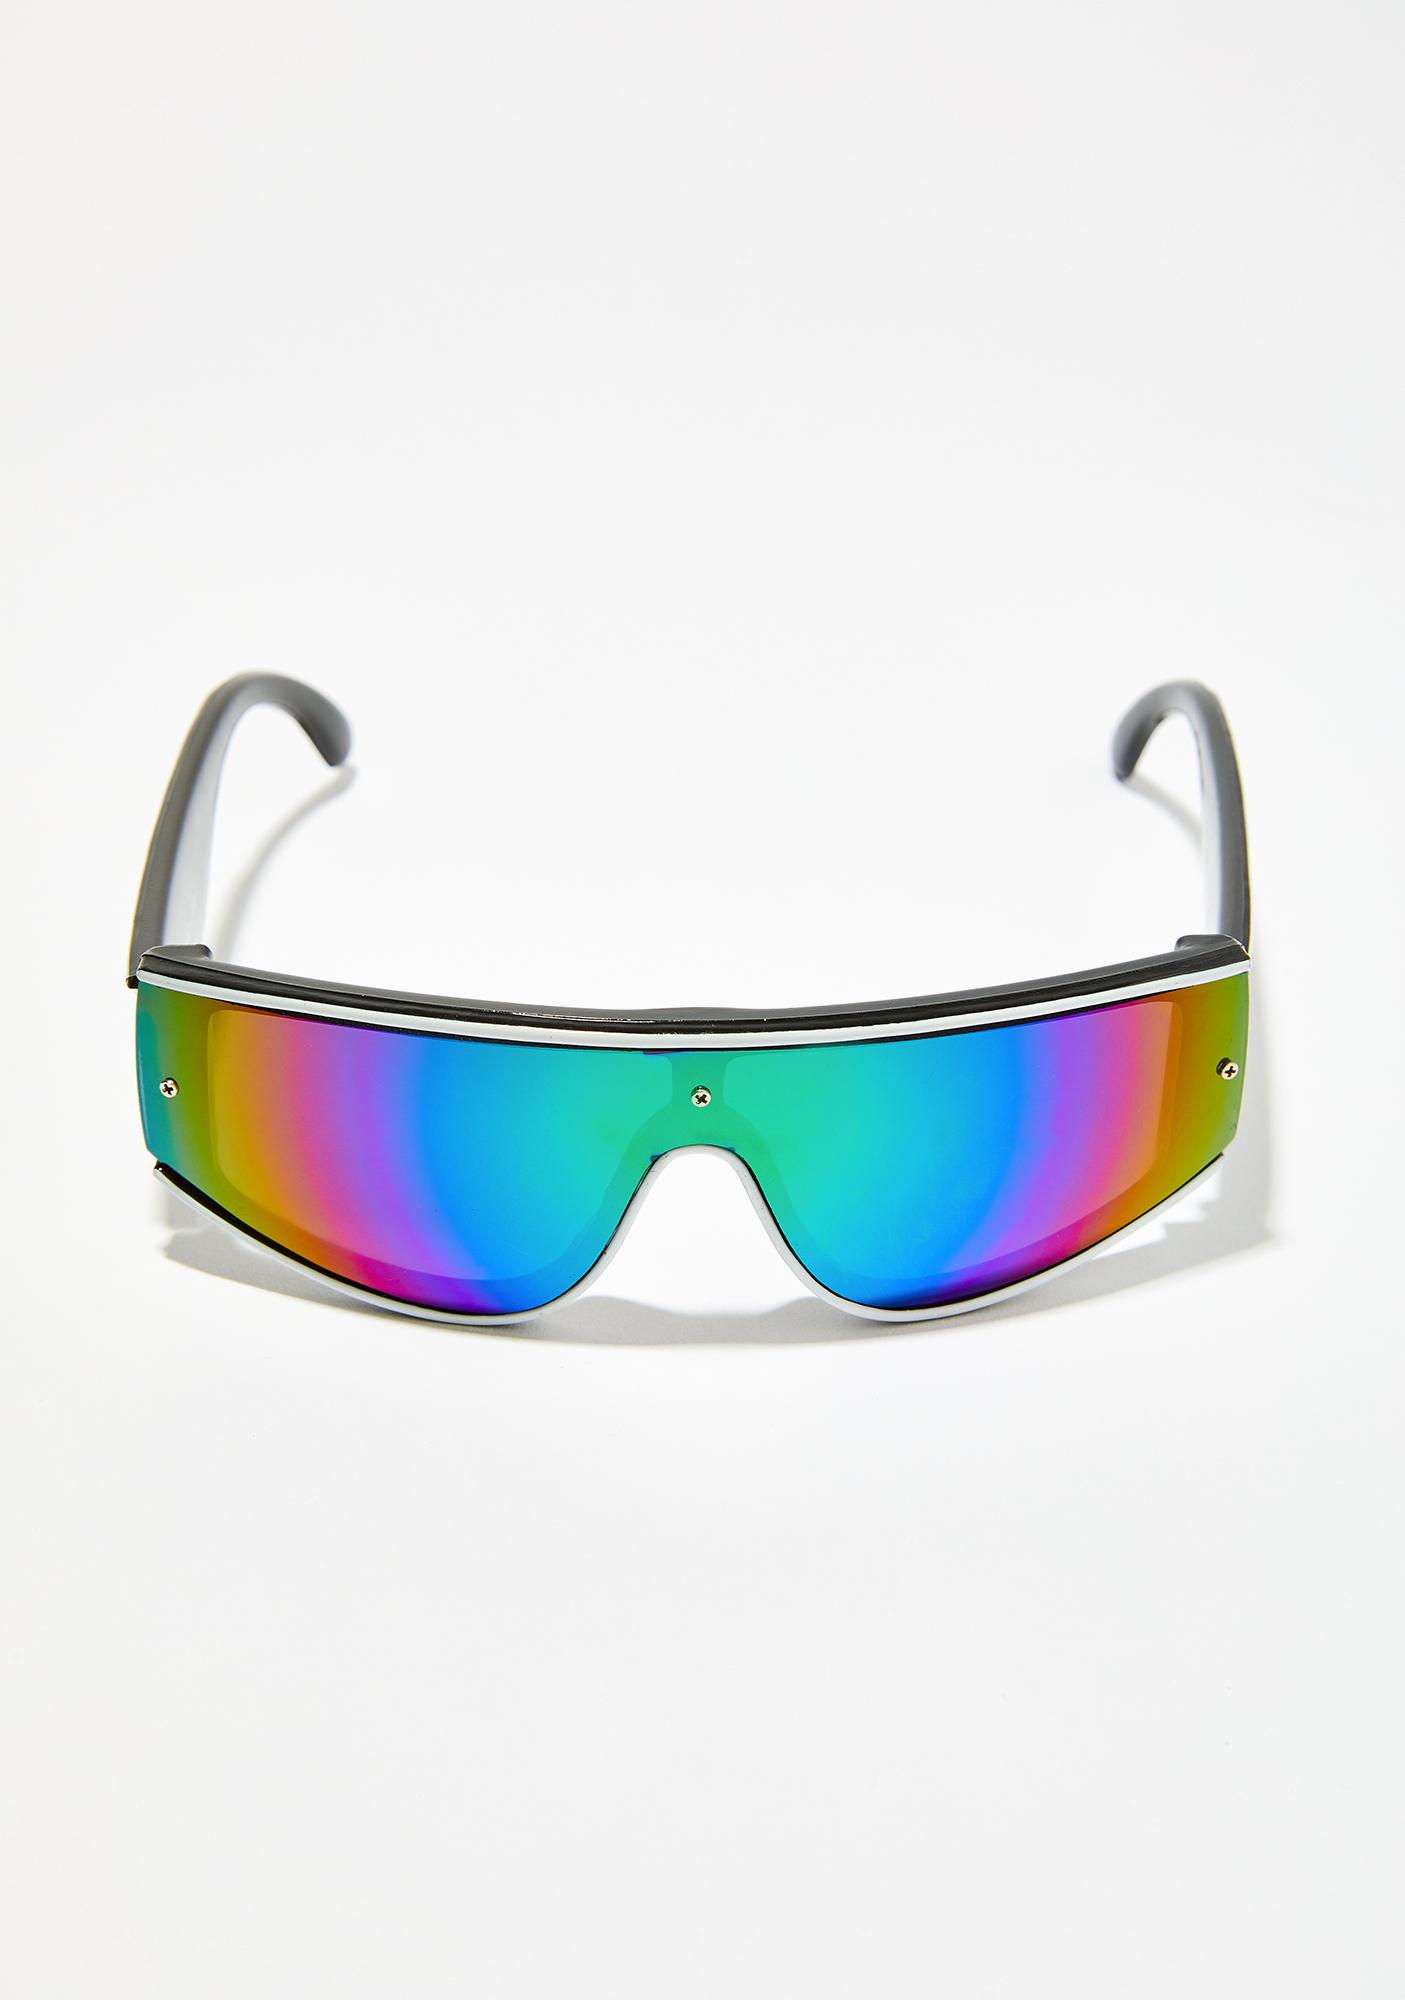 e6cdcbe3f3 Future Funk Shield Sunglasses · Future Funk Shield Sunglasses ...